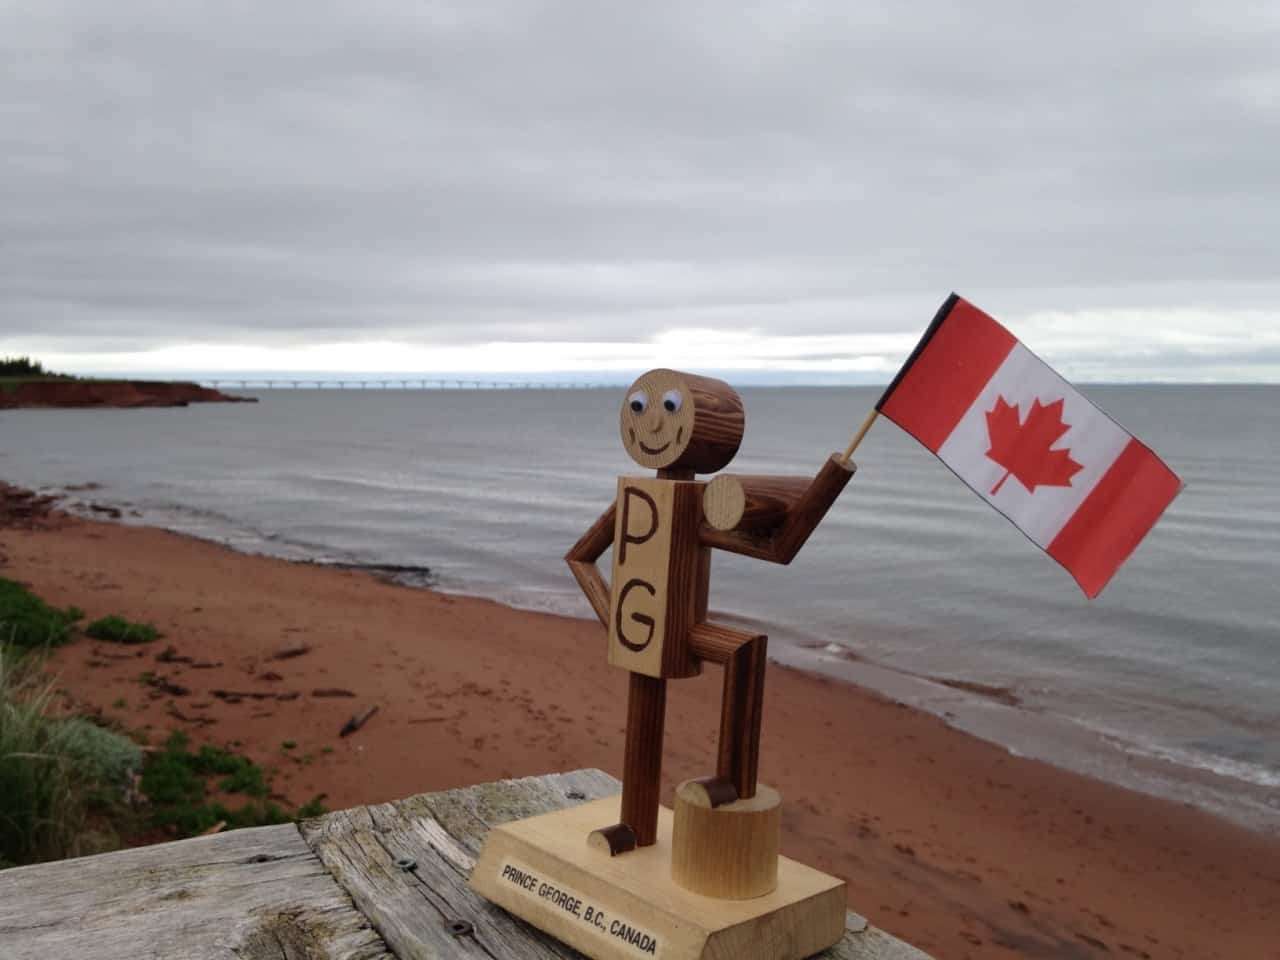 5df1816cb800b9204f6c6ebe.jpg - PEI - Across Canada in search of #BIGselfies trip 2014<br />The red sands of PEI and the confederation bridge in the background